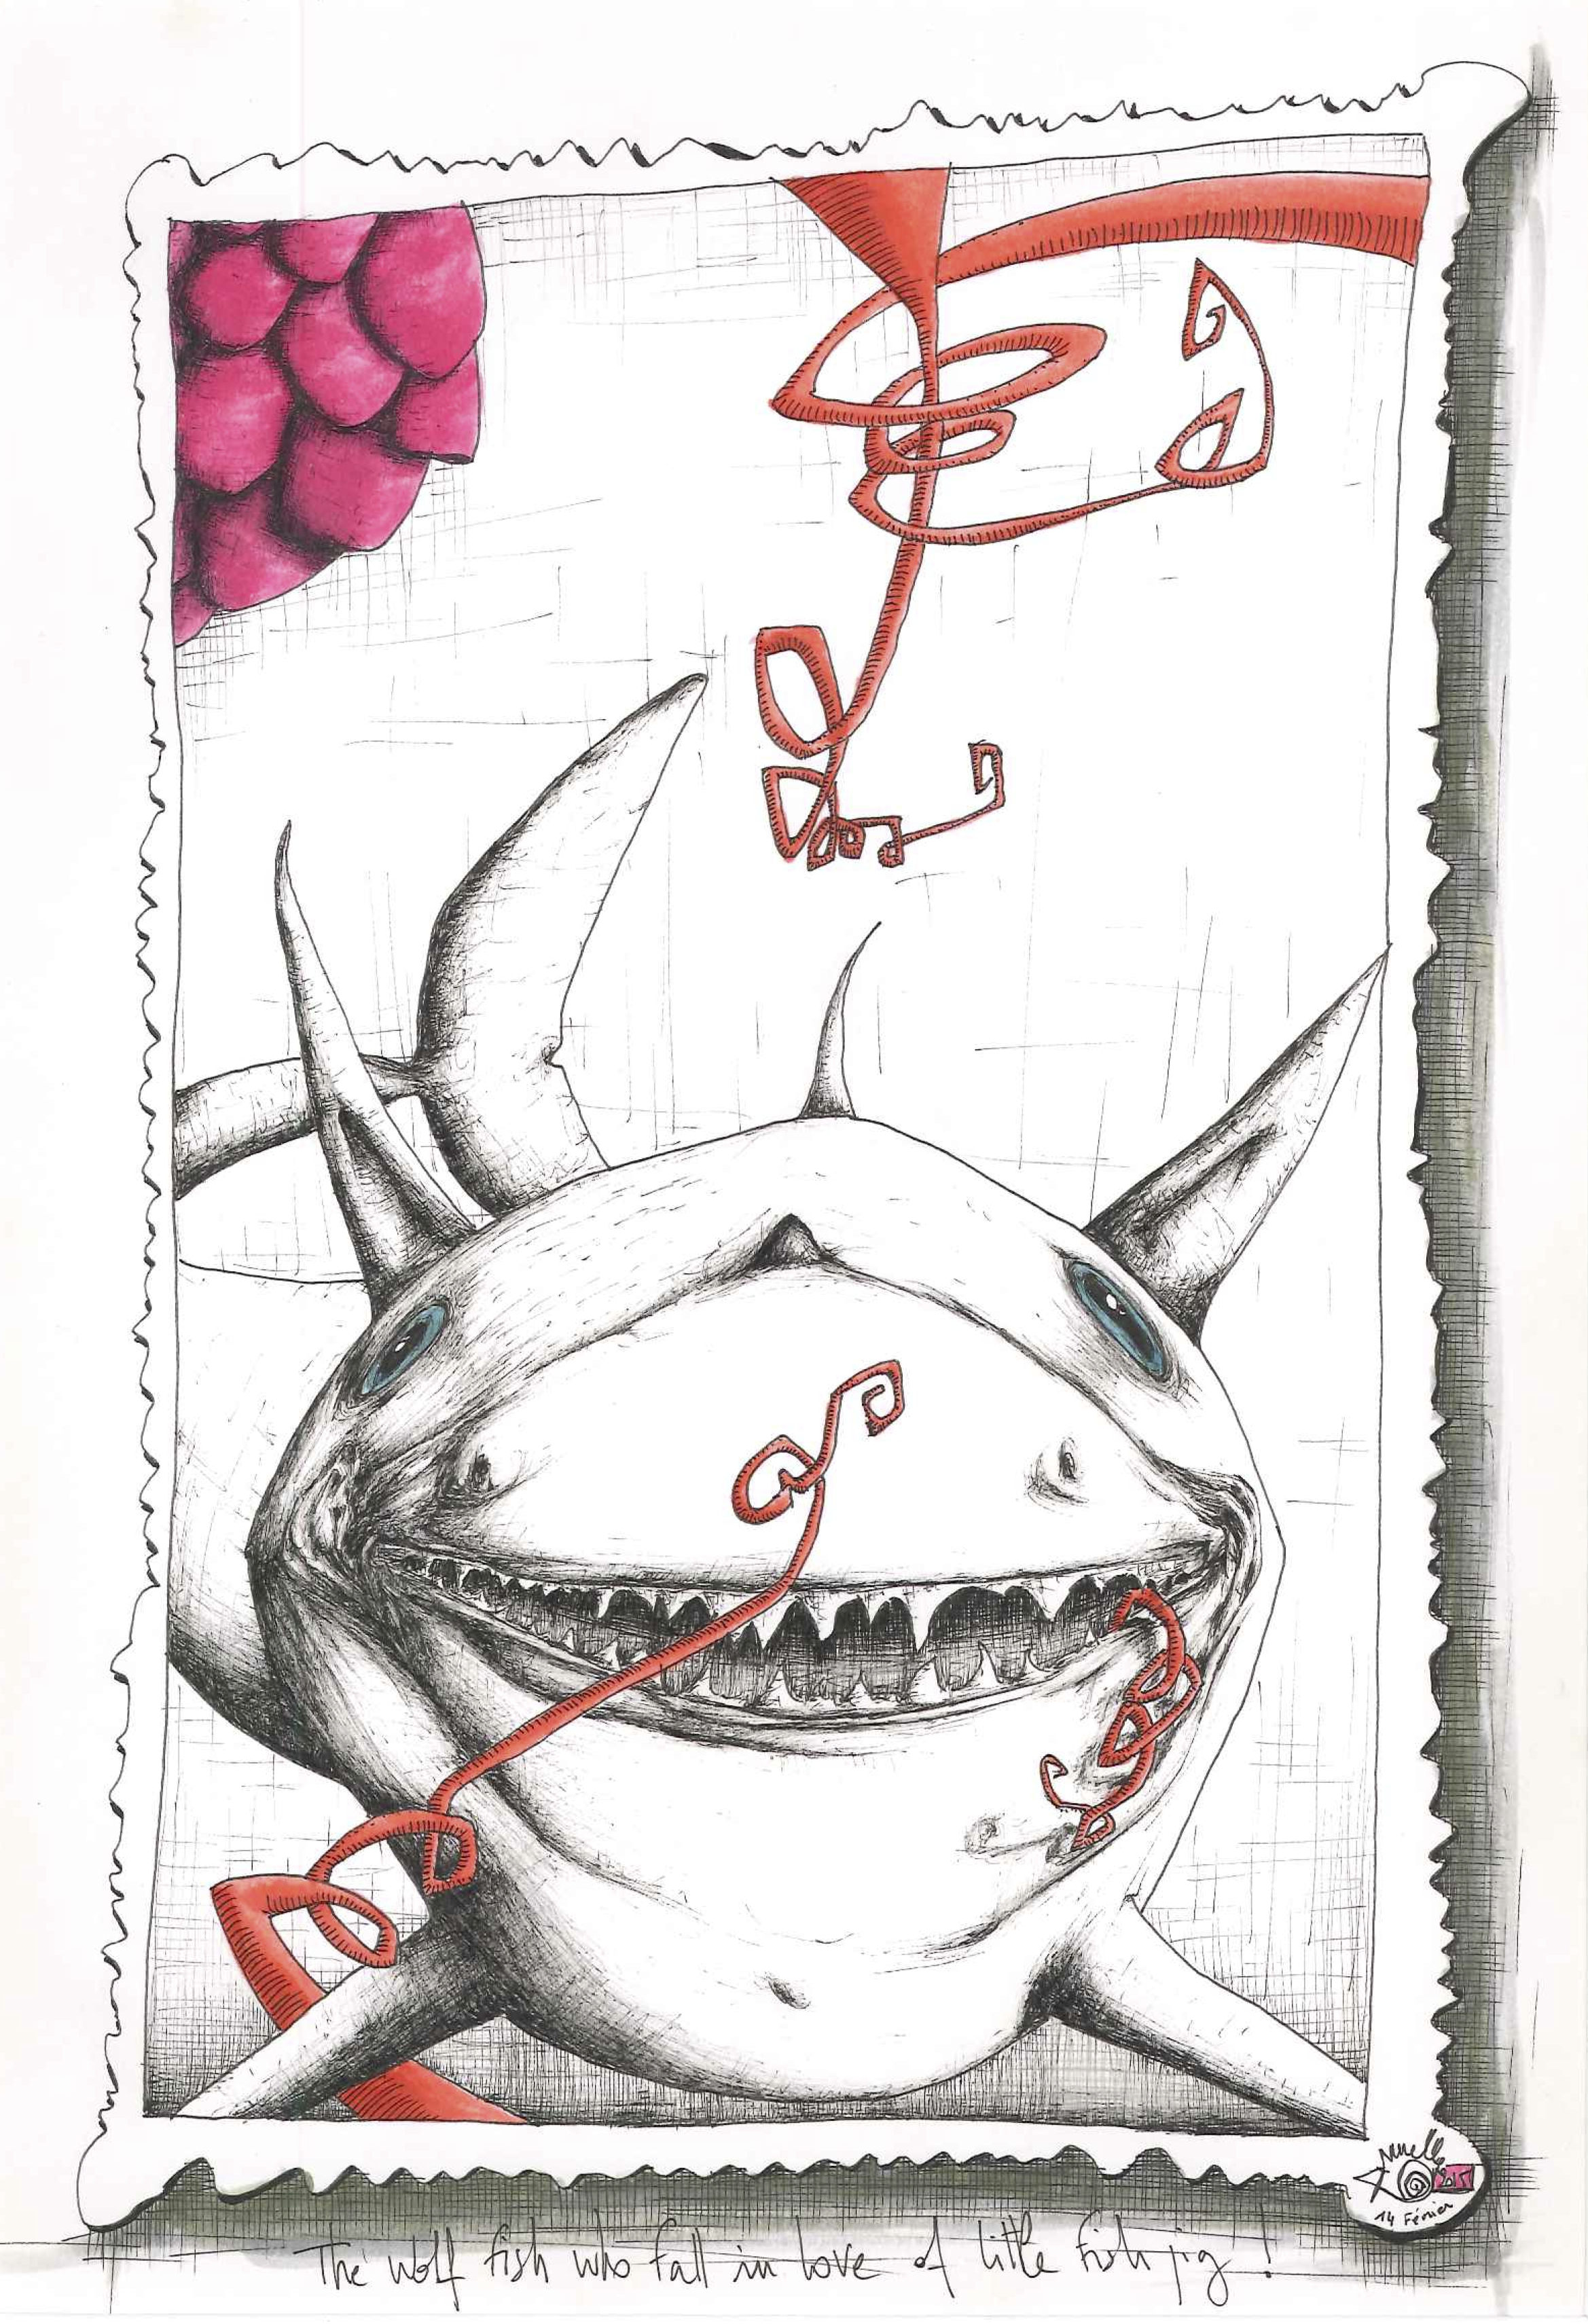 The wolf fish who fall...